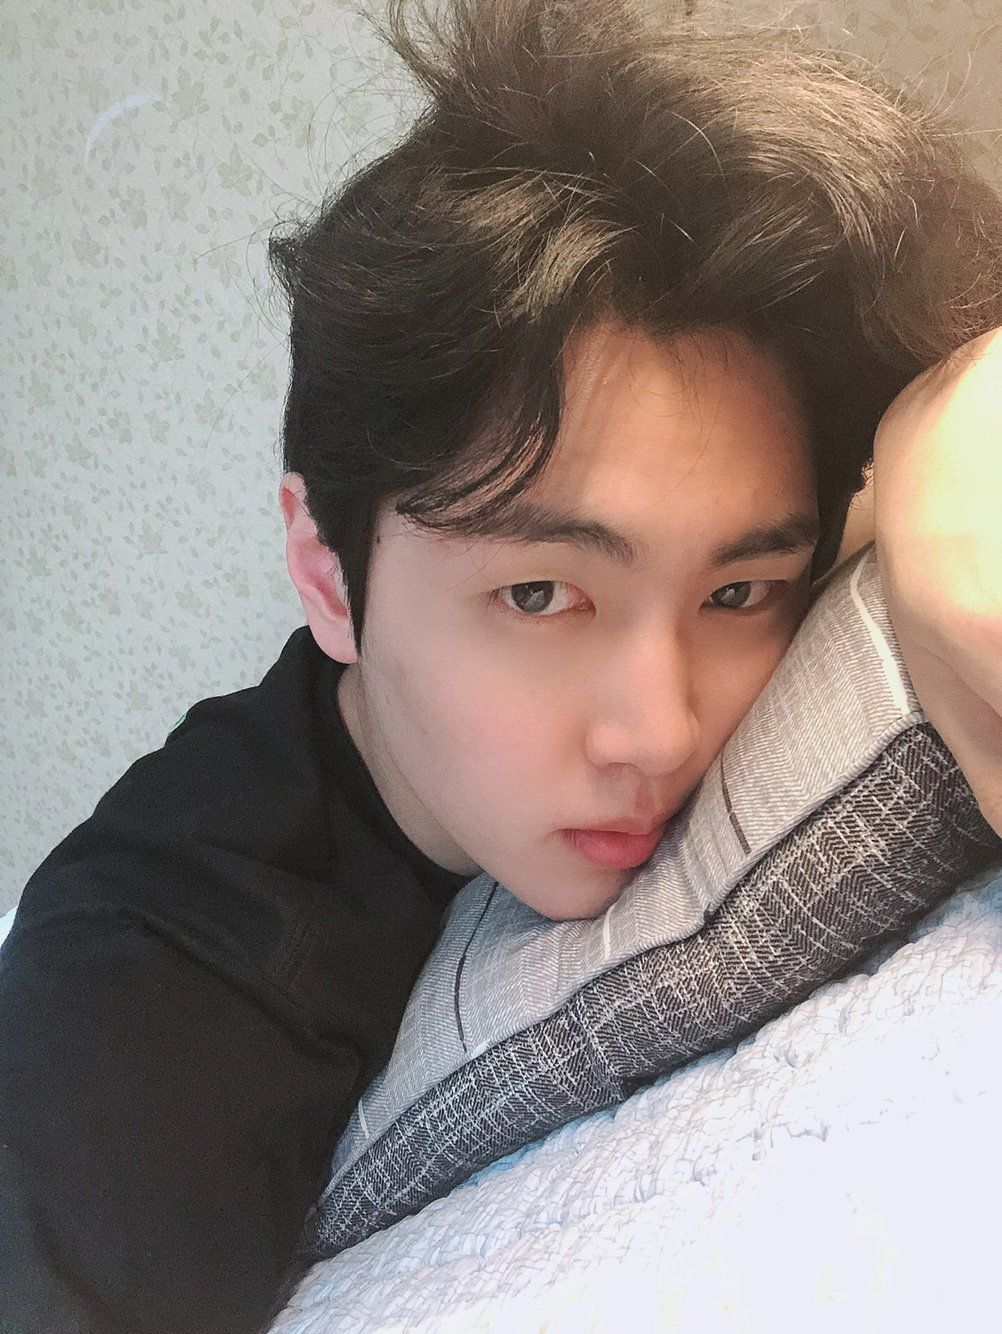 Sfnet Jaeyoon Fancafe Update Today Good Morning Jaengjji Did You Sleep Well I Feel Great Because It S Been A While Sin Sf9 Sf9 Rowoon Fnc Entertainment